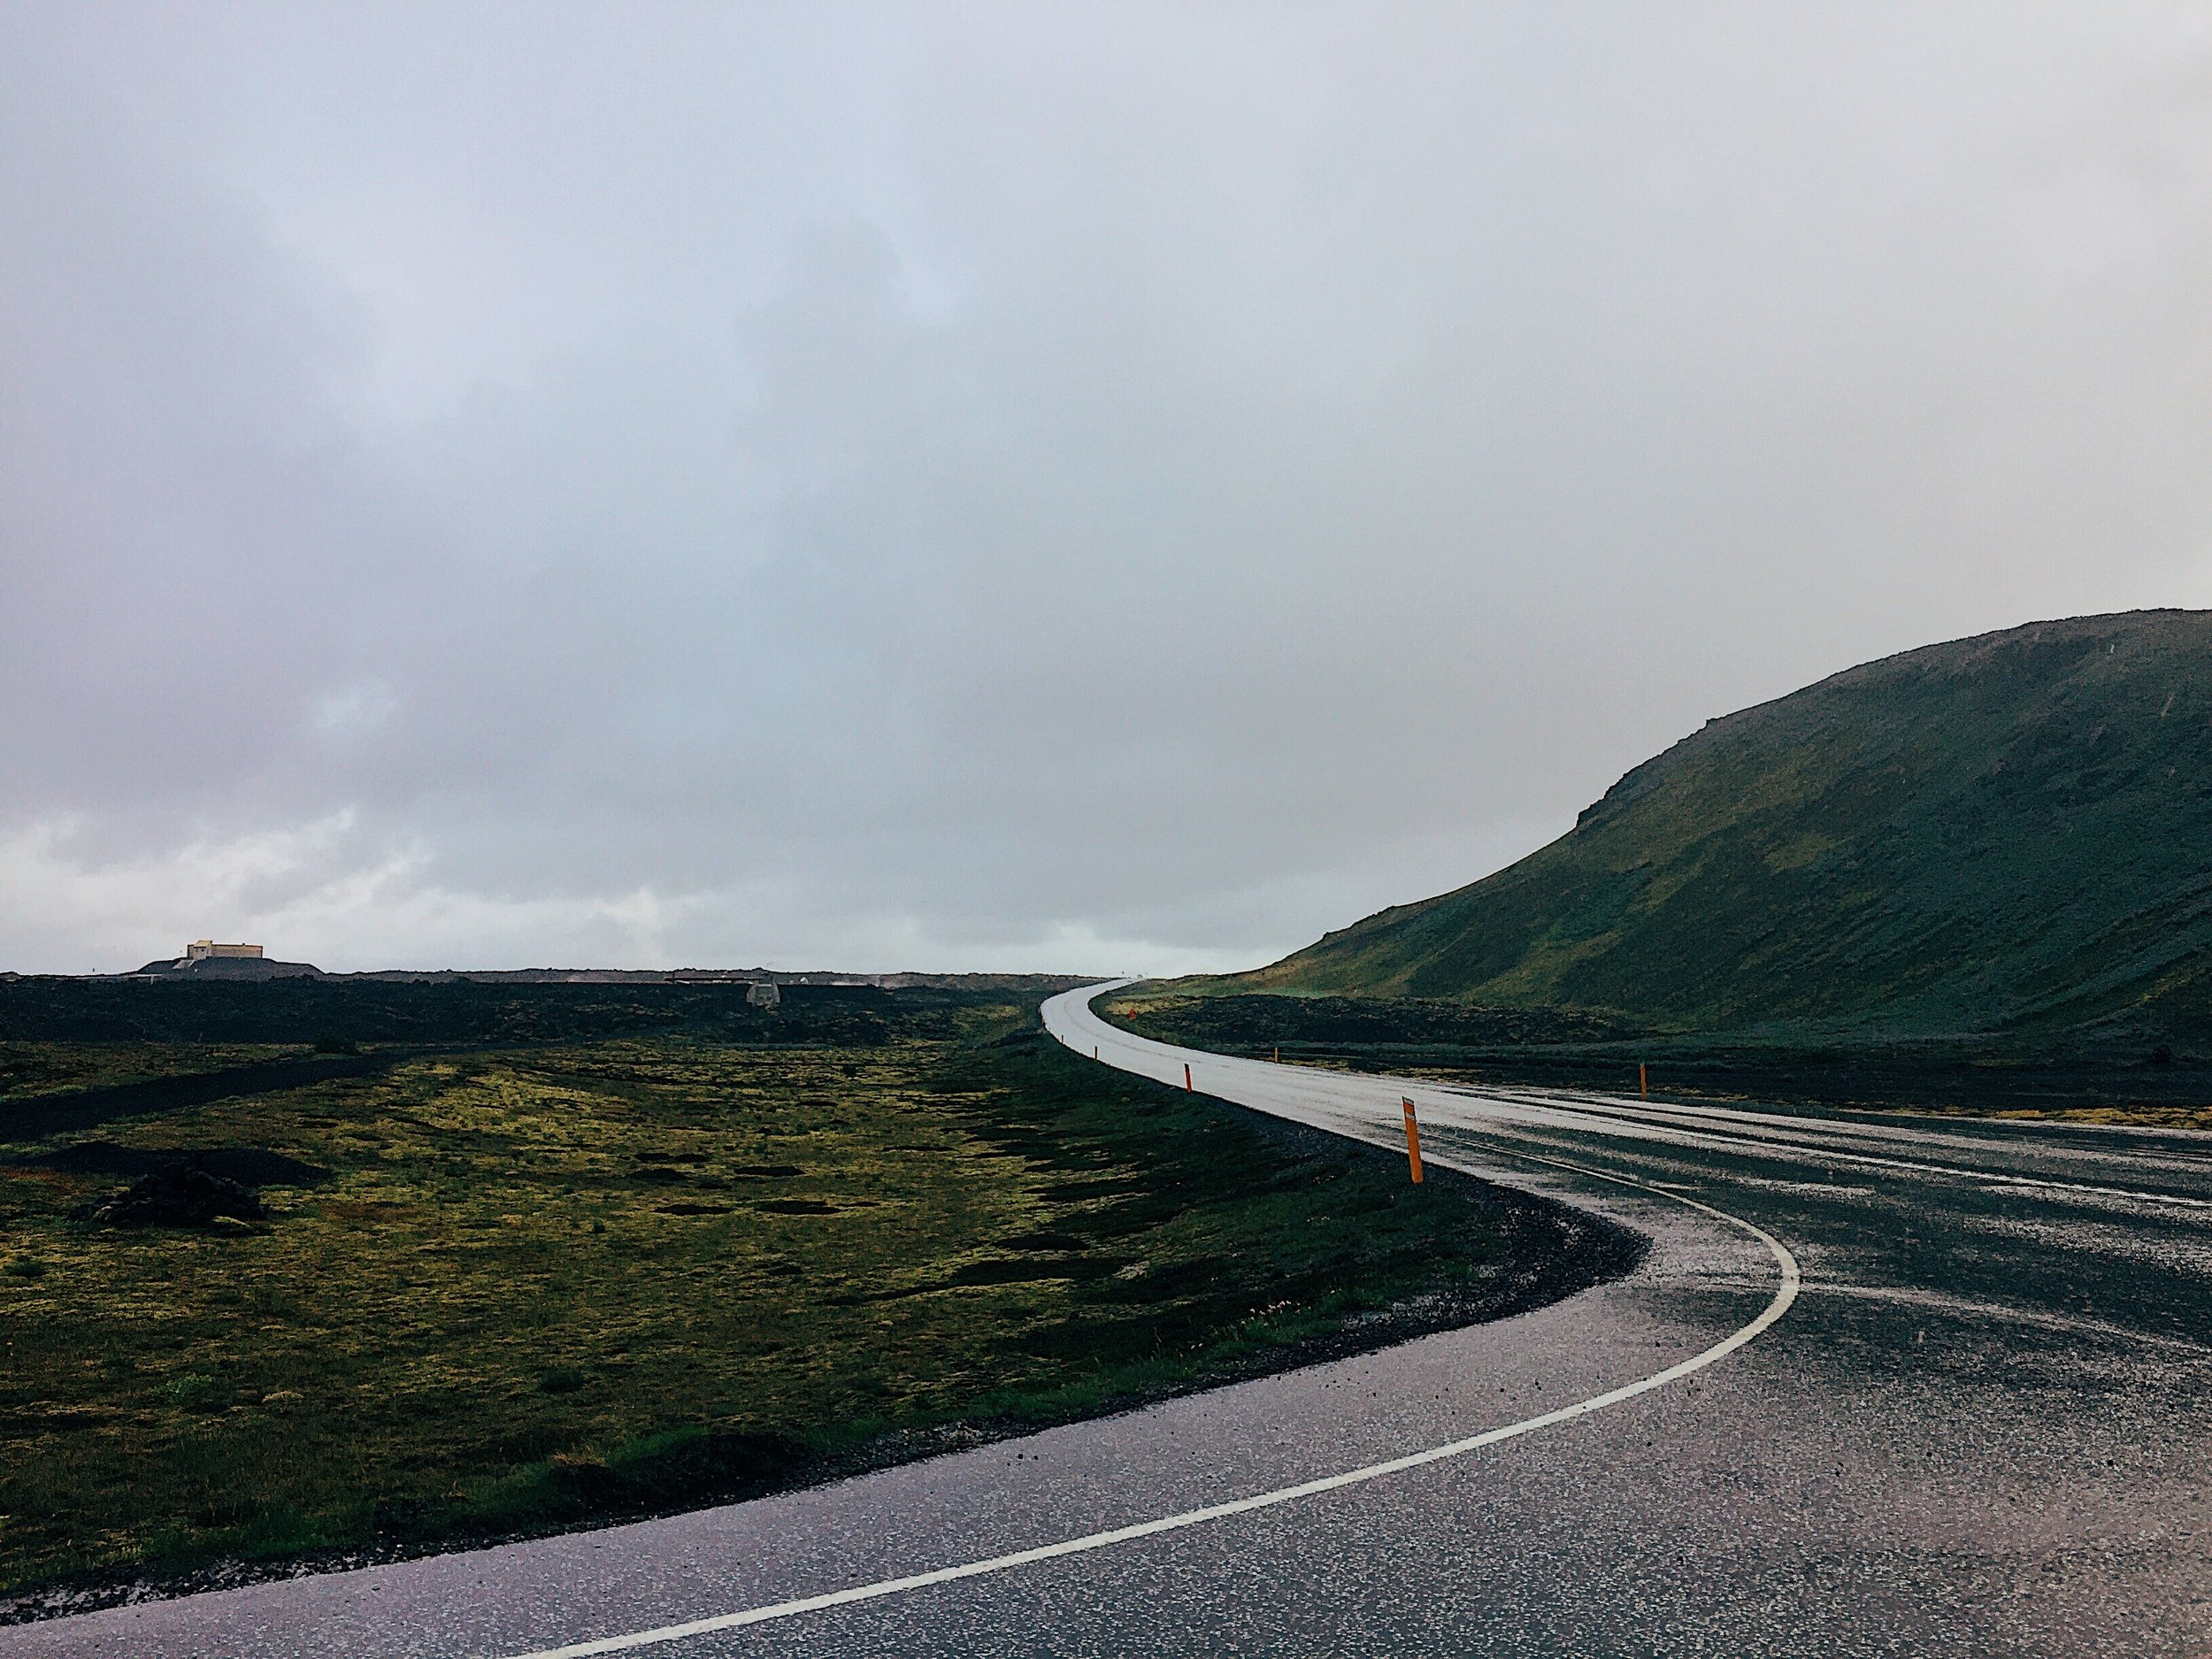 Winding roads of Iceland. This picture was taken a few minutes after the one above. The weather changes quickly so enjoy the moment.